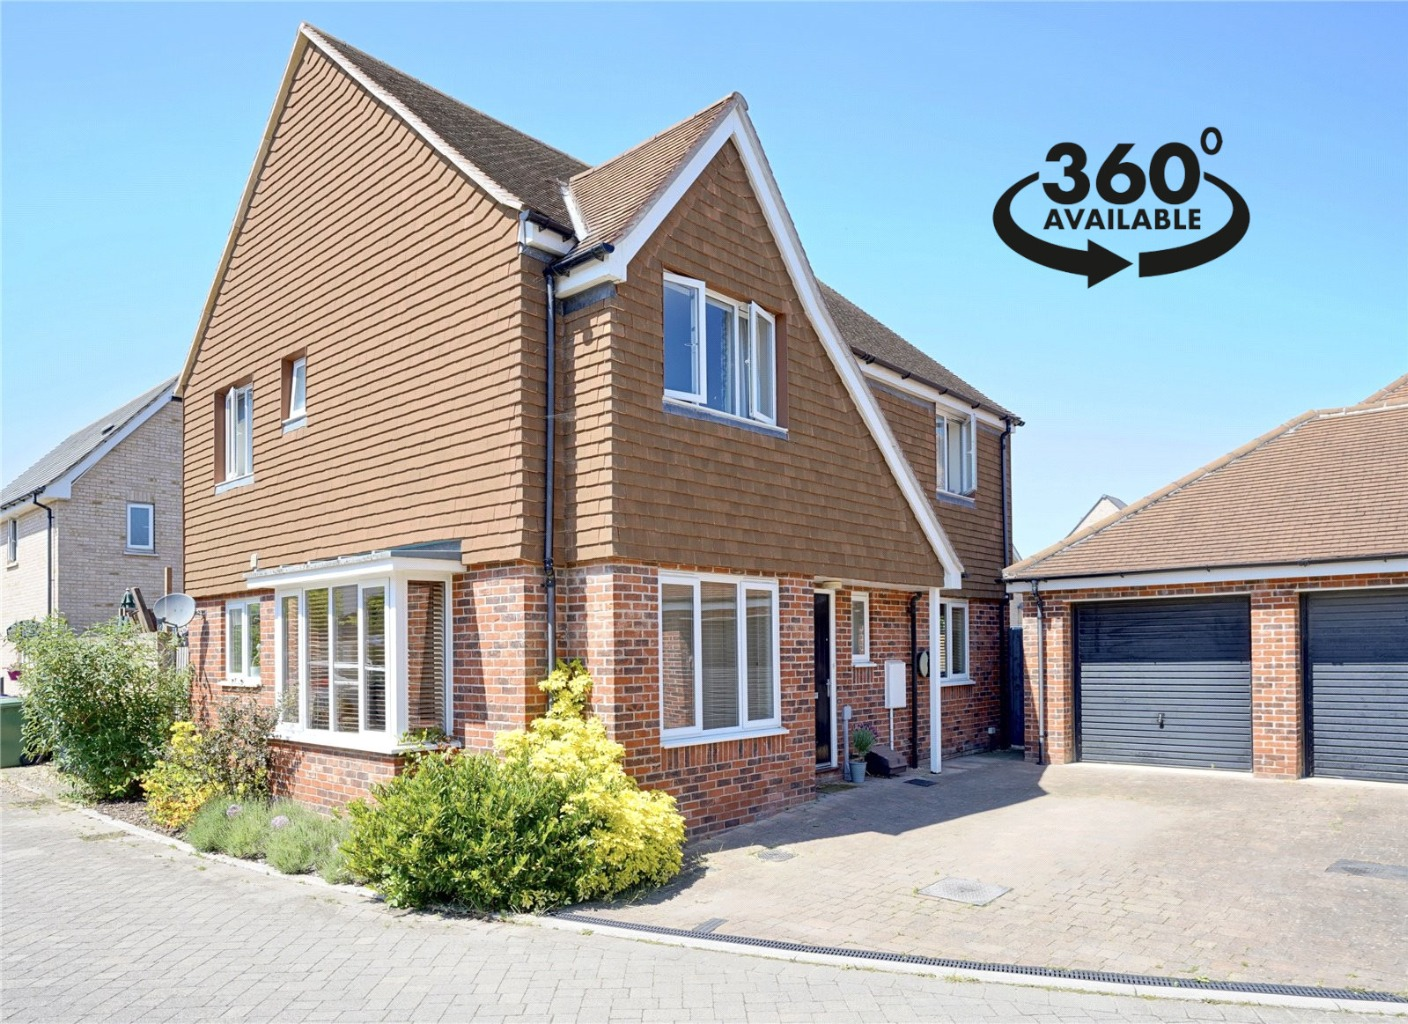 4 bed detached house for sale in Wood Ridge Crescent, St. Neots  - Property Image 1